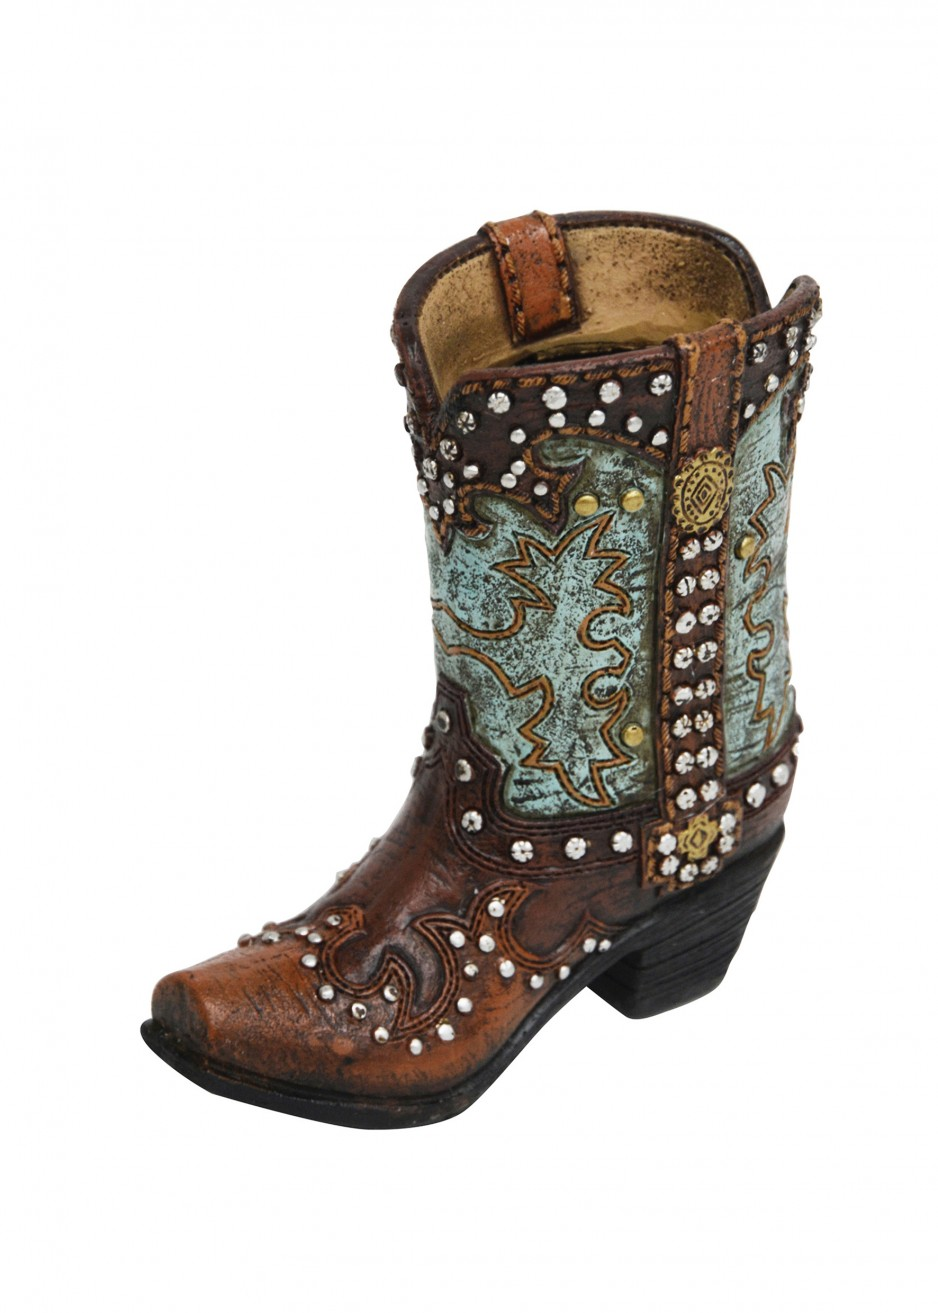 RESIN STUD TURQUOISE BOOT SMALL